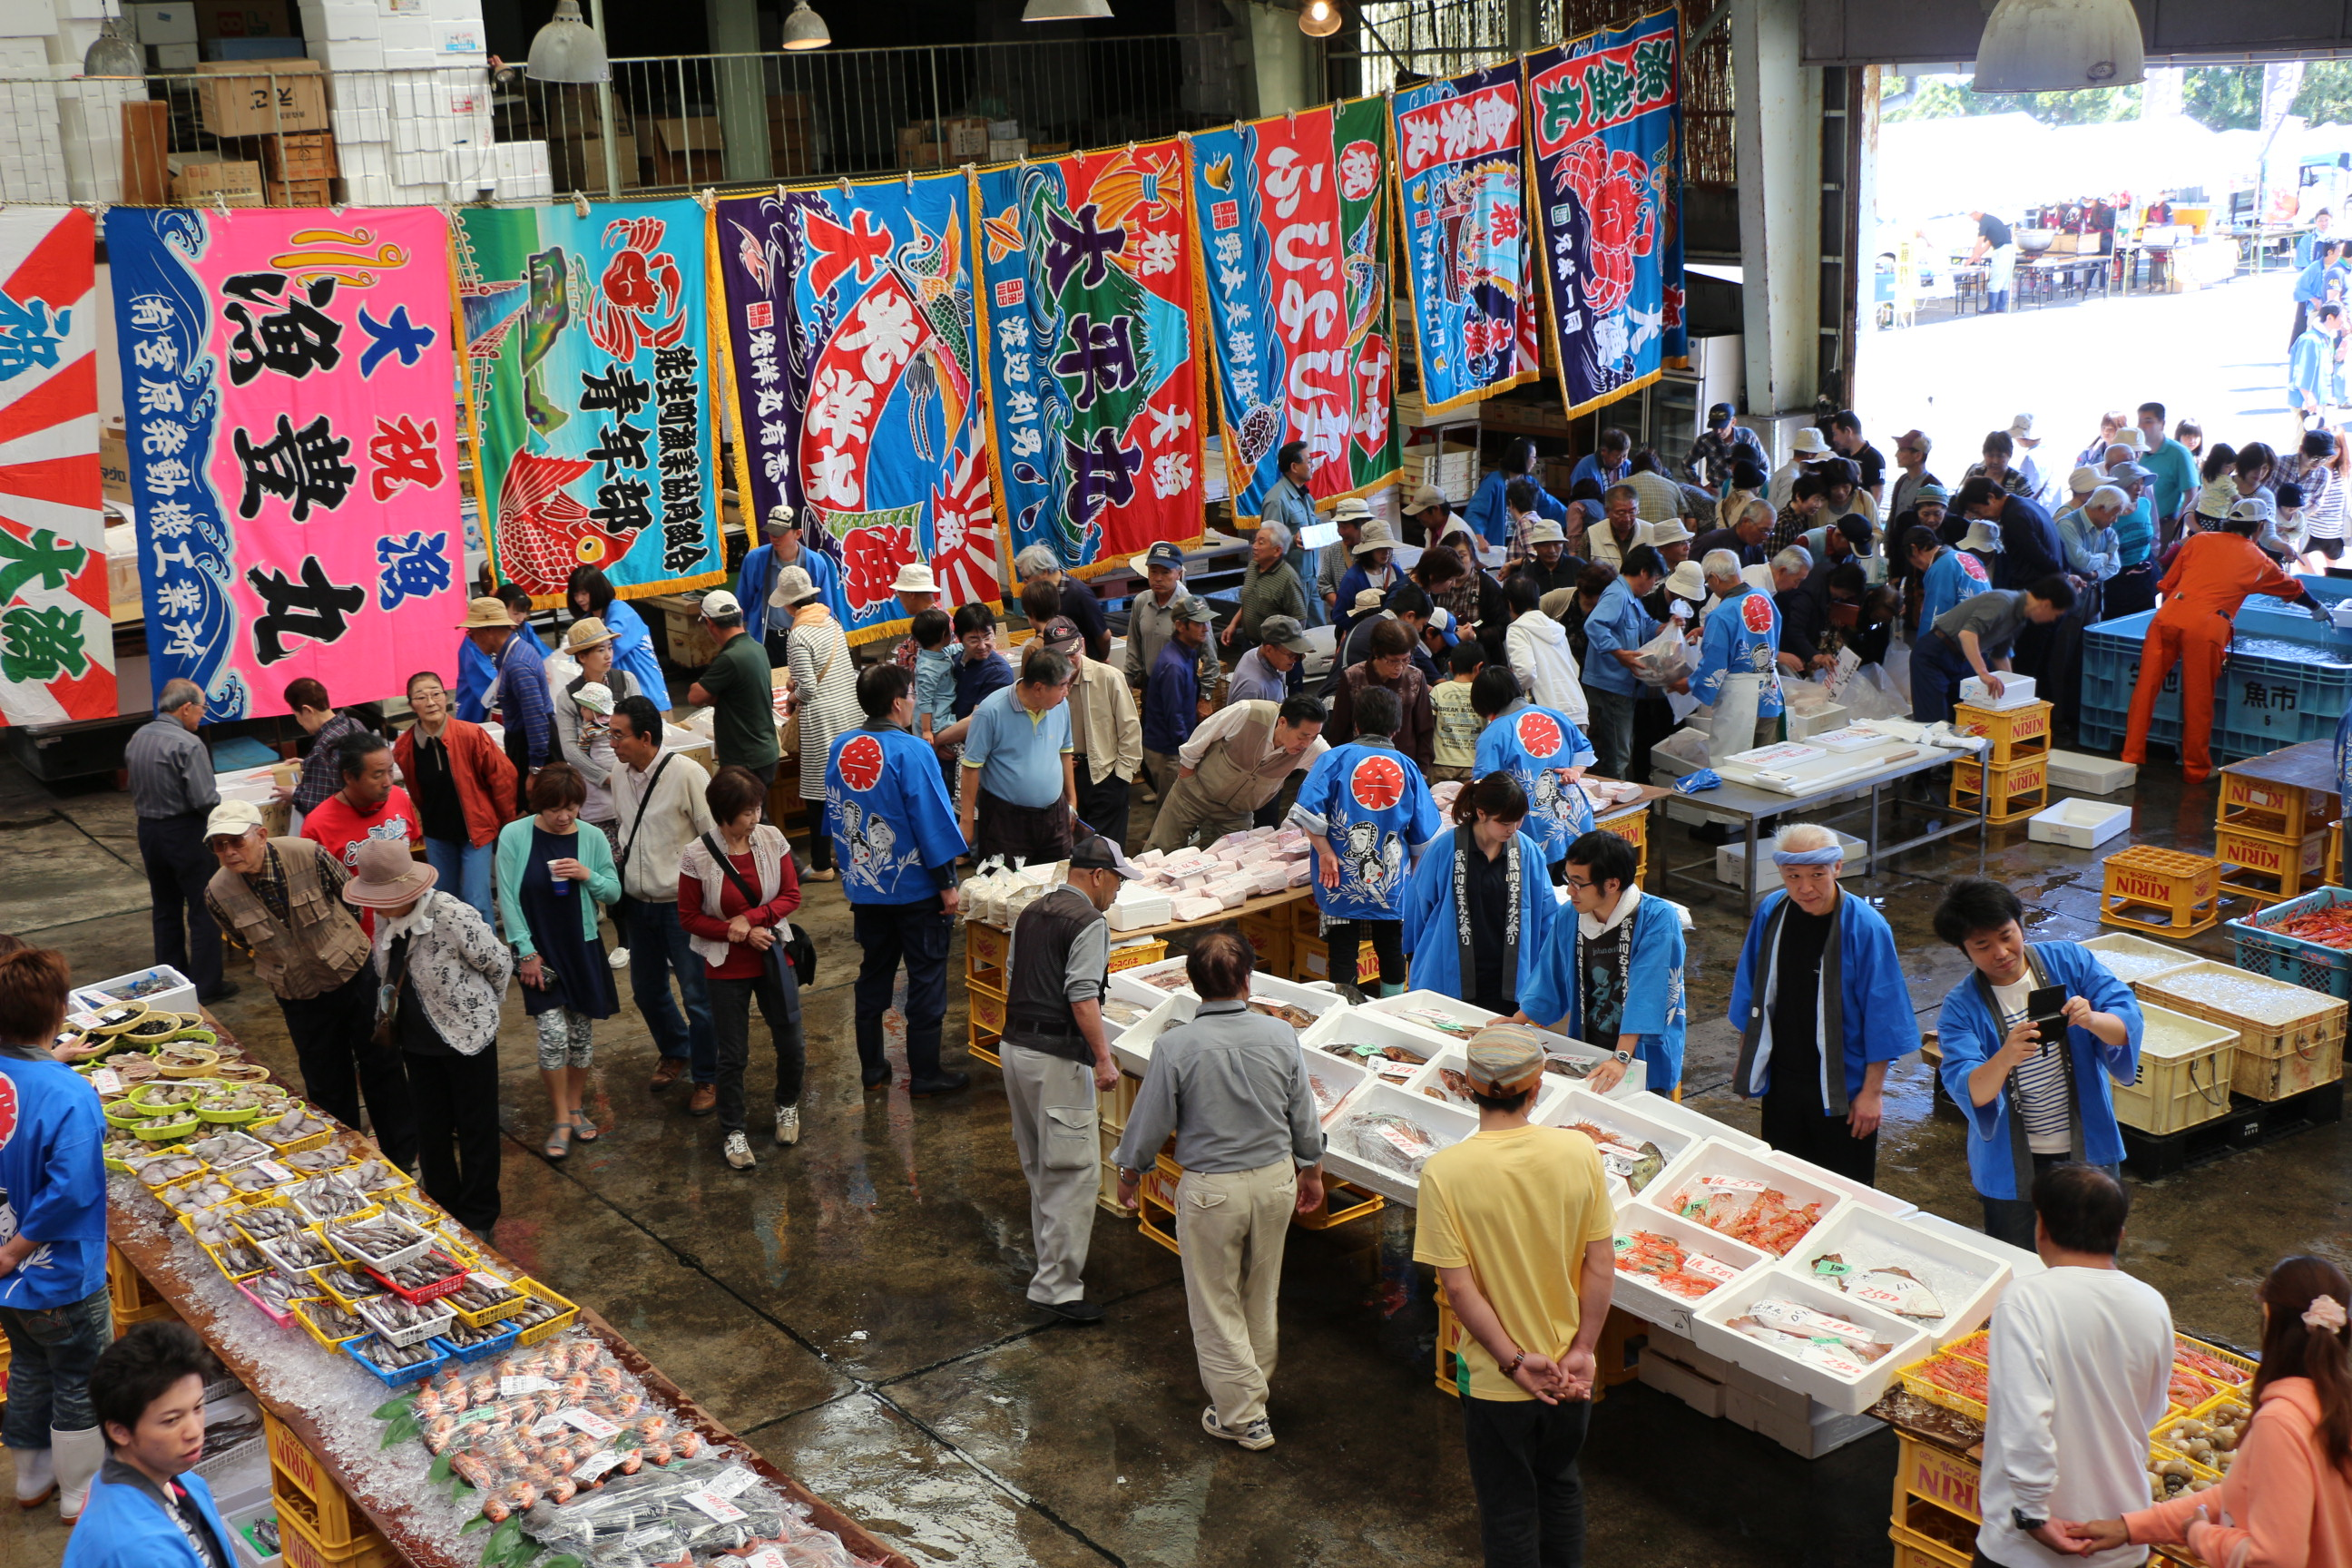 Visitors pack into the Itoigawa Fish Market to see the day's catch!